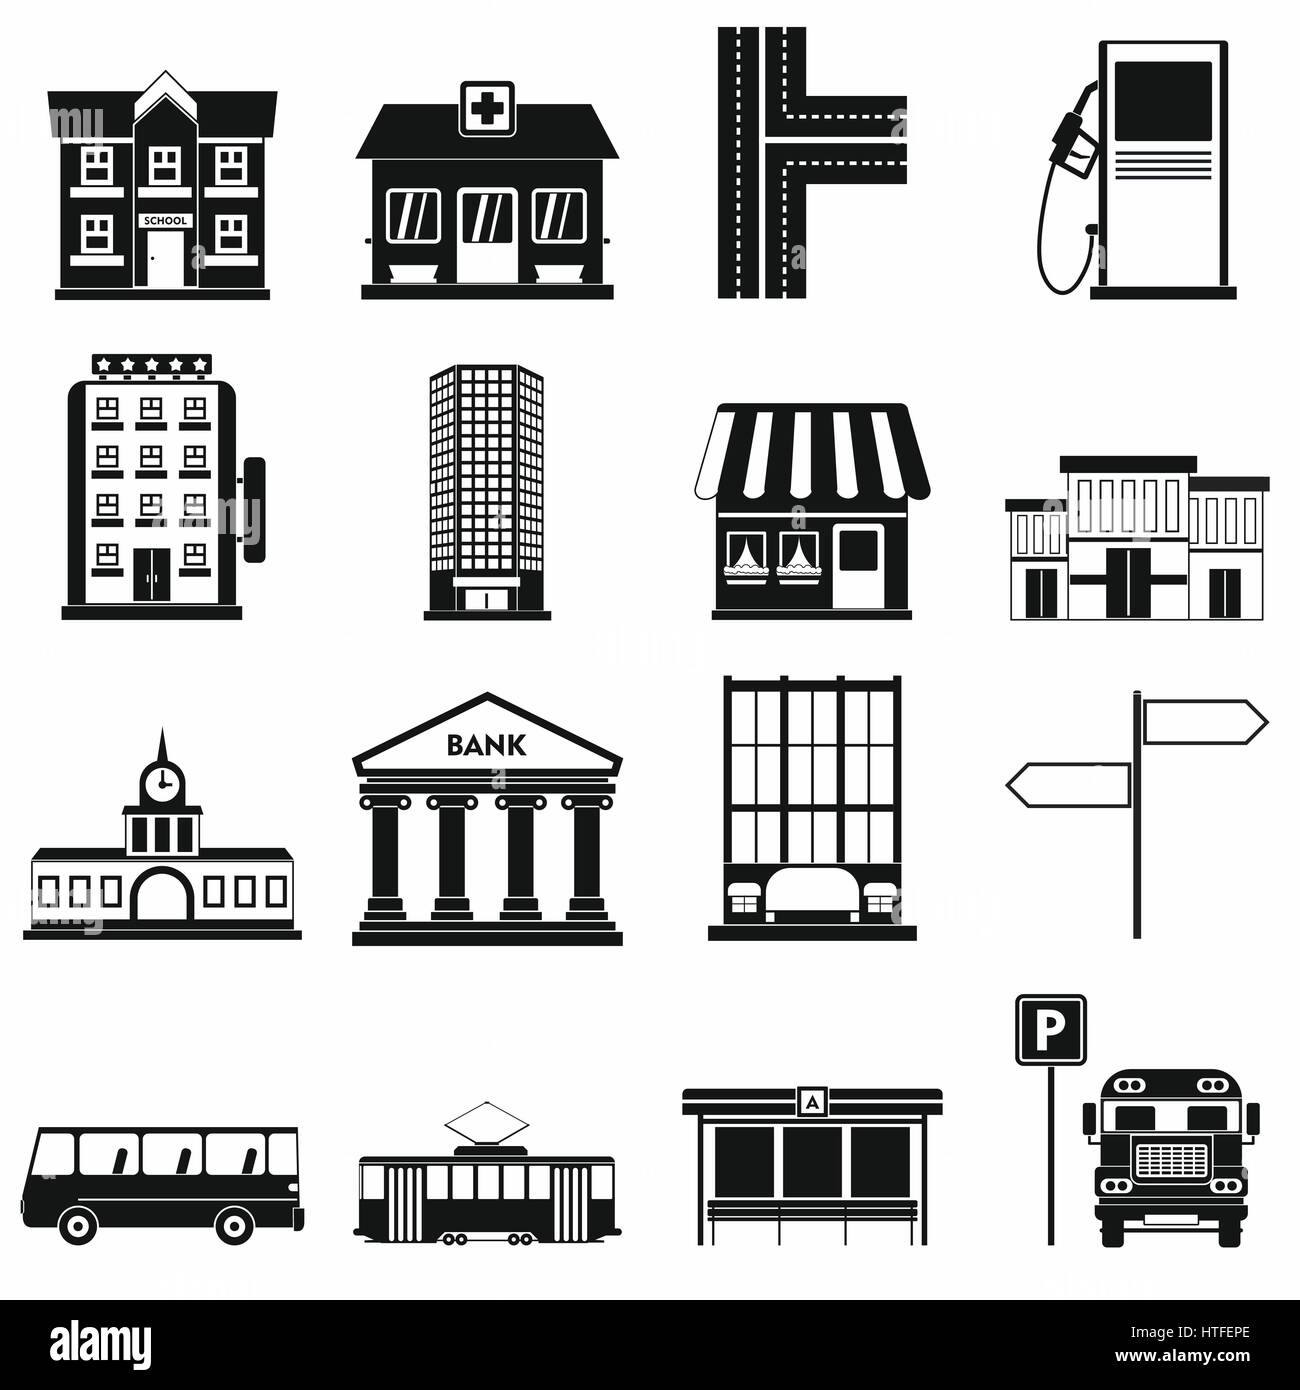 Infrastructure set icons Stock Vector